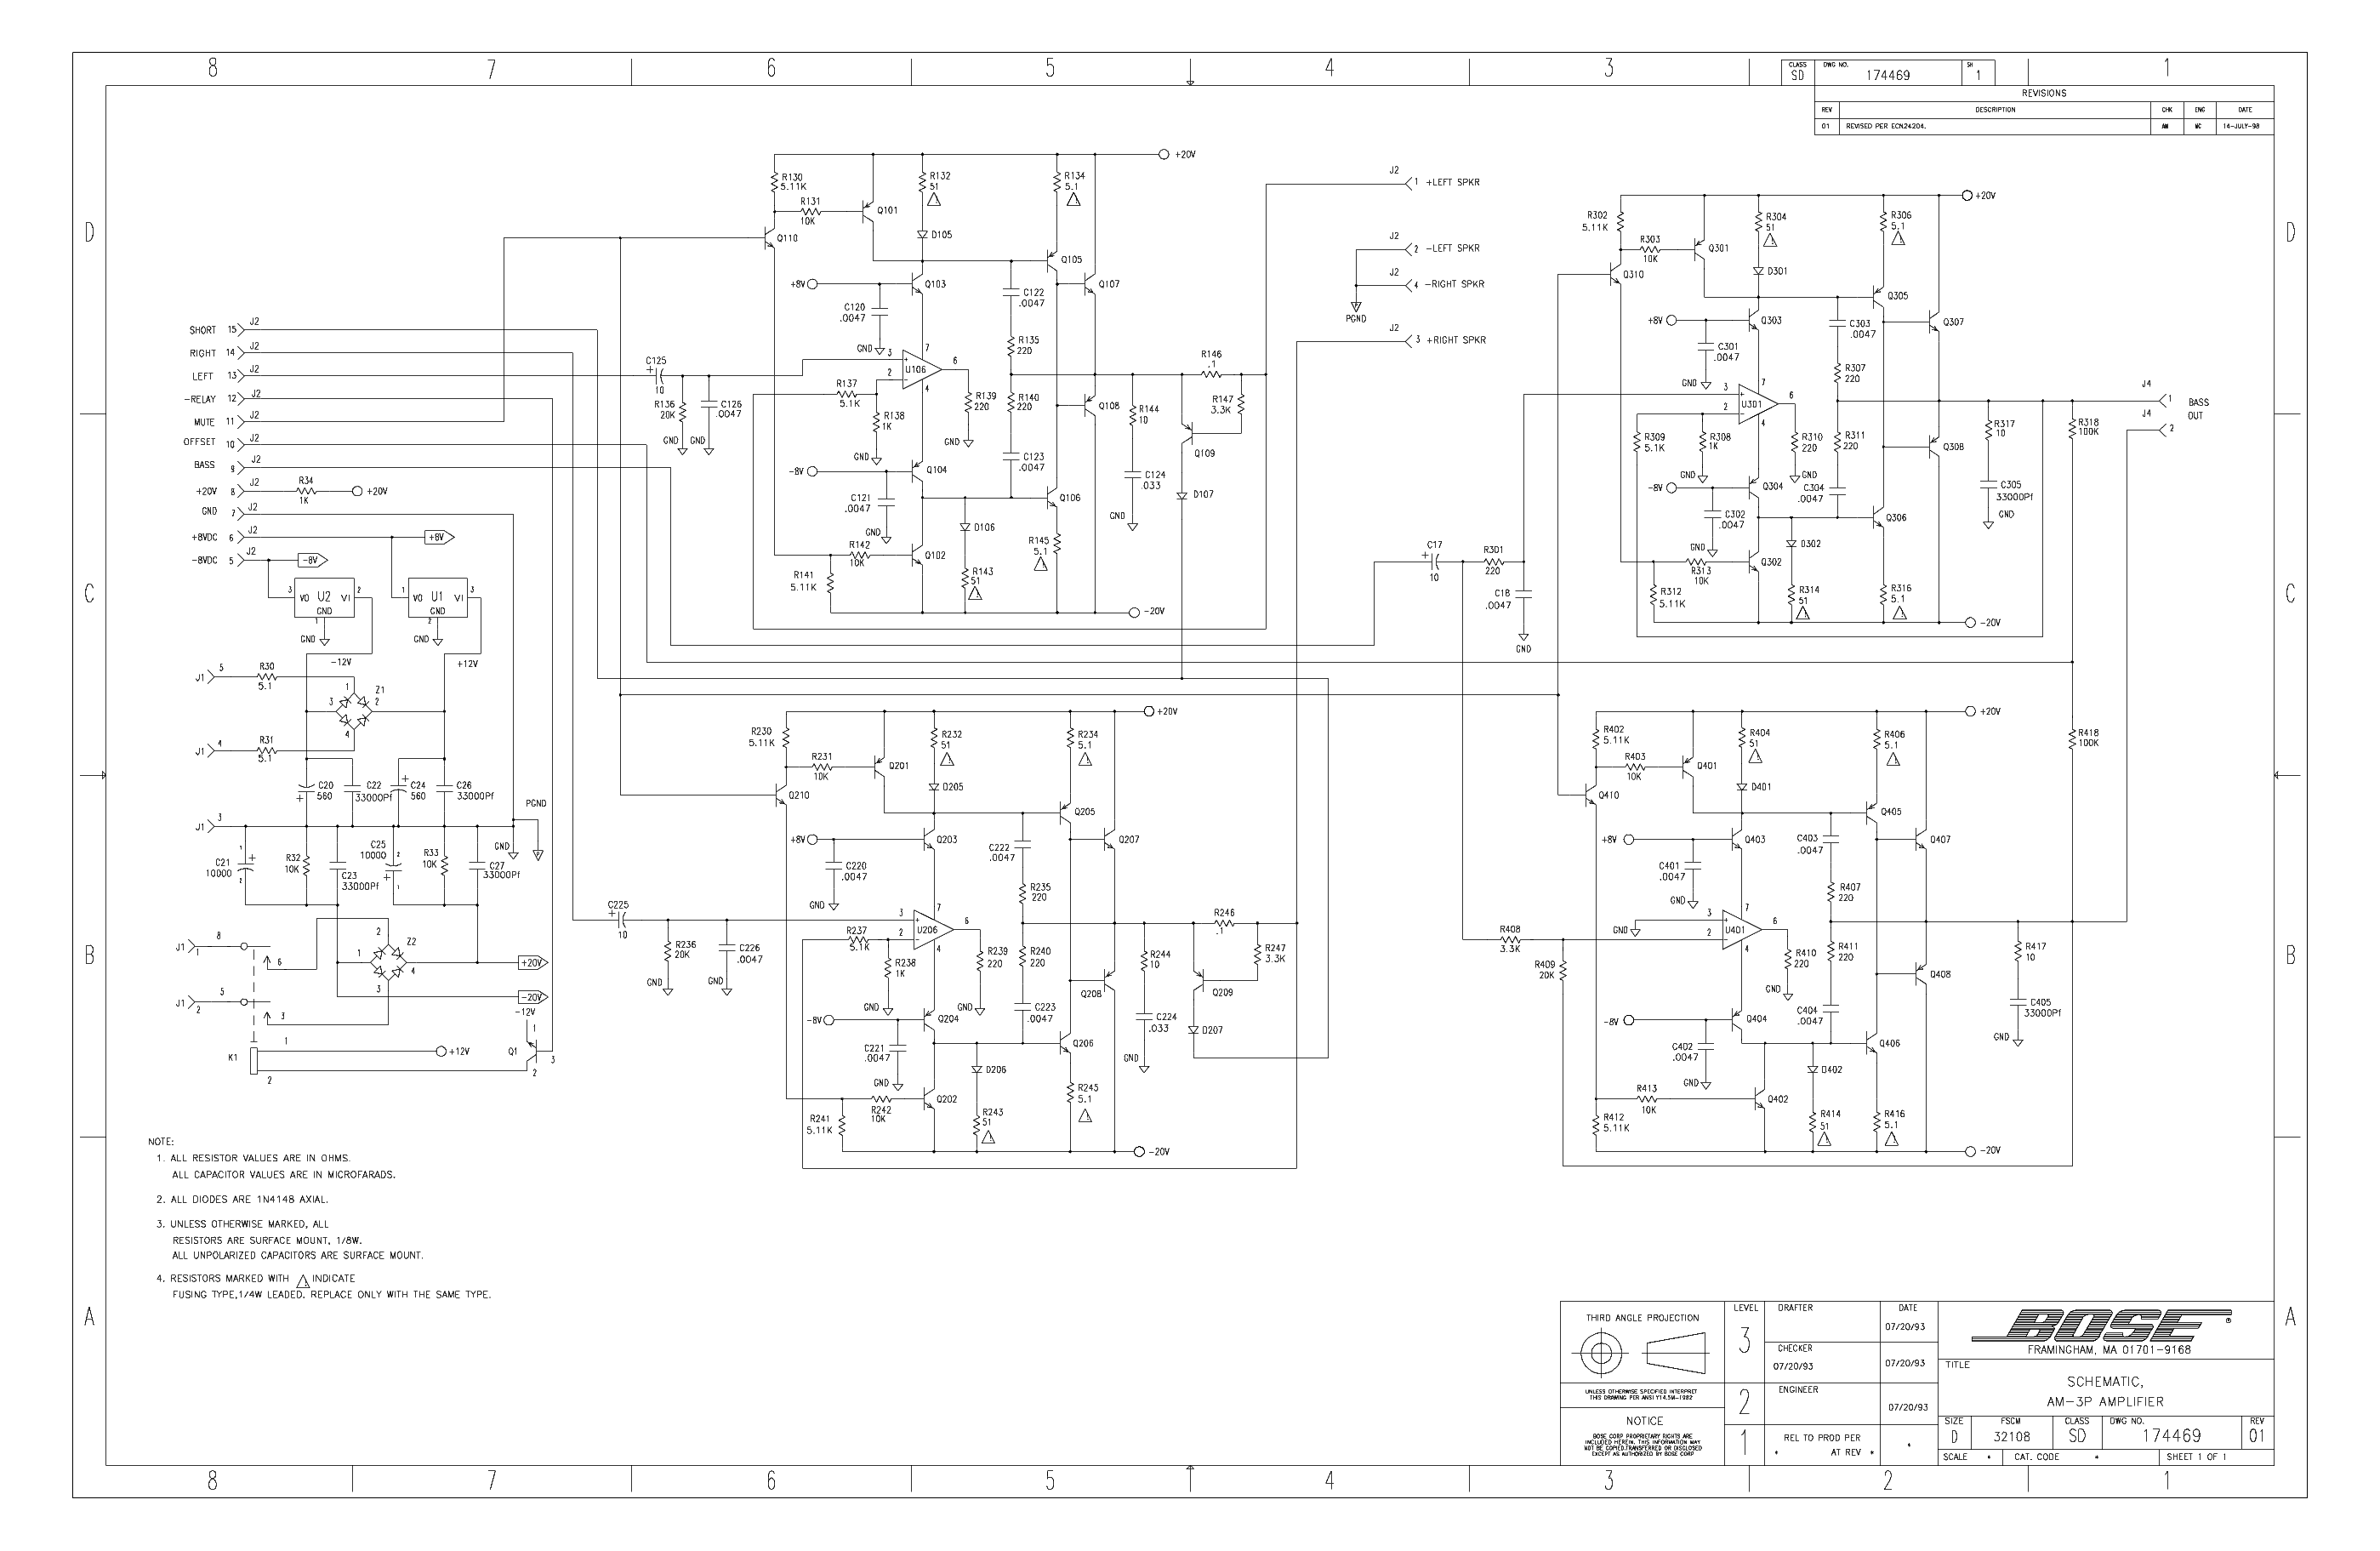 Bose Am 3p Sch Service Manual Download Schematics Eeprom